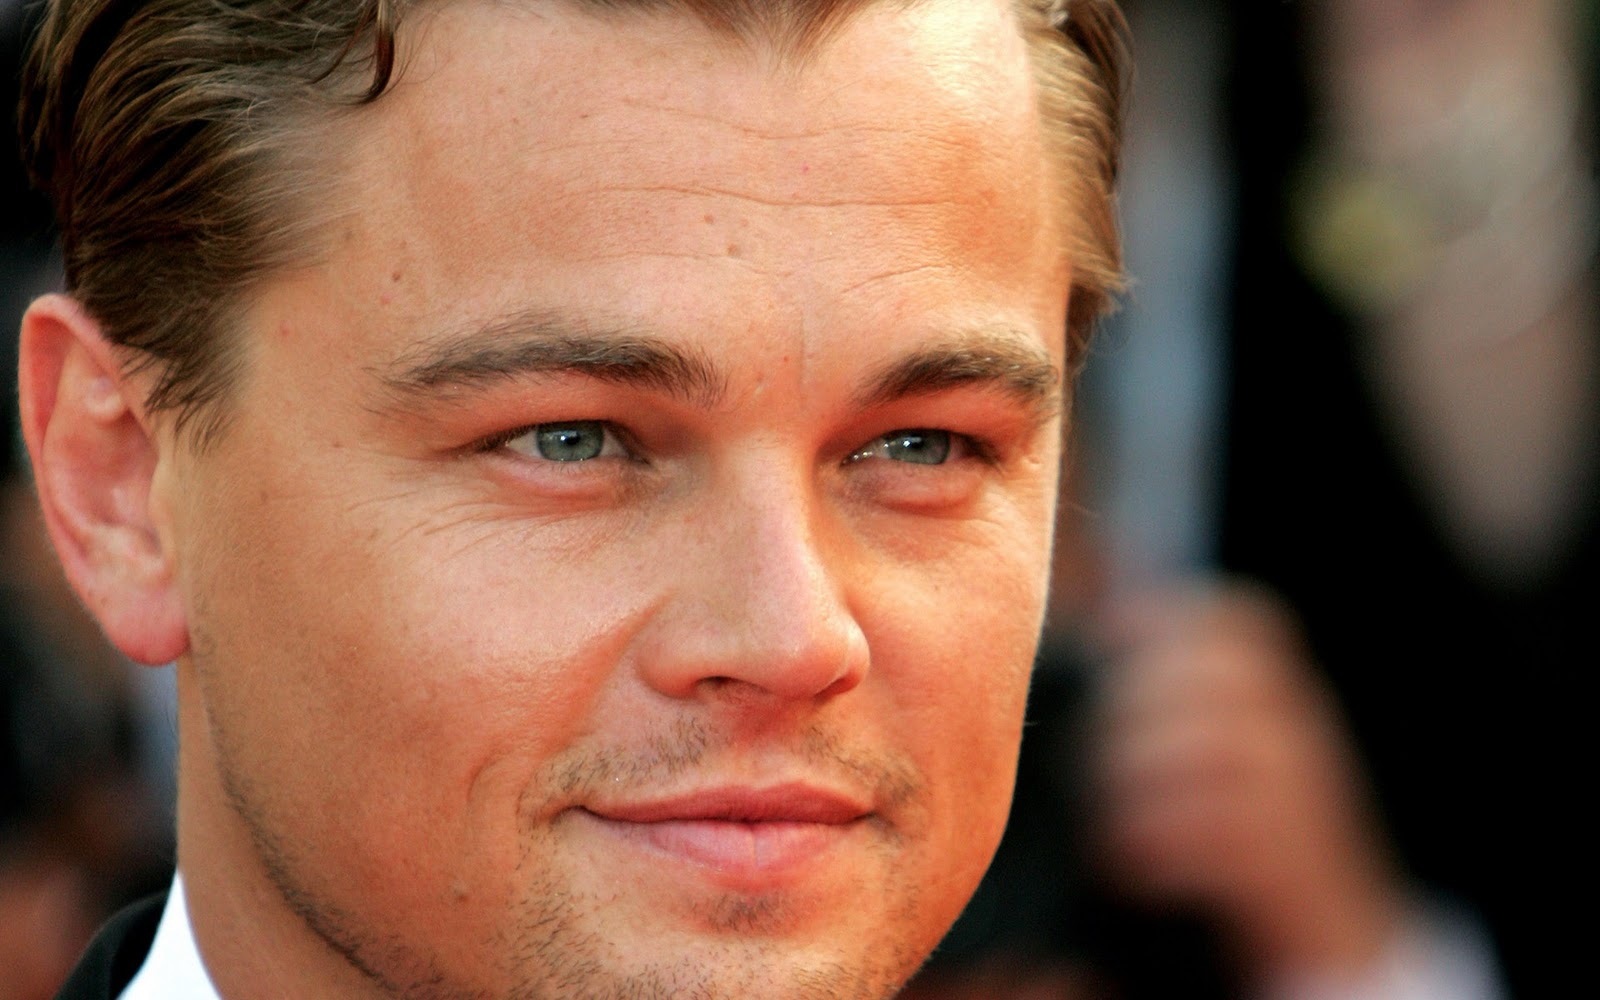 http://4.bp.blogspot.com/-eTAzVX1PJv0/TtcFb5nnu2I/AAAAAAAAAZw/1FM20GkUo34/s1600/Leonardo-DiCaprio-pictures-desktop-Wallpapers-HD-photo-images-7.jpg